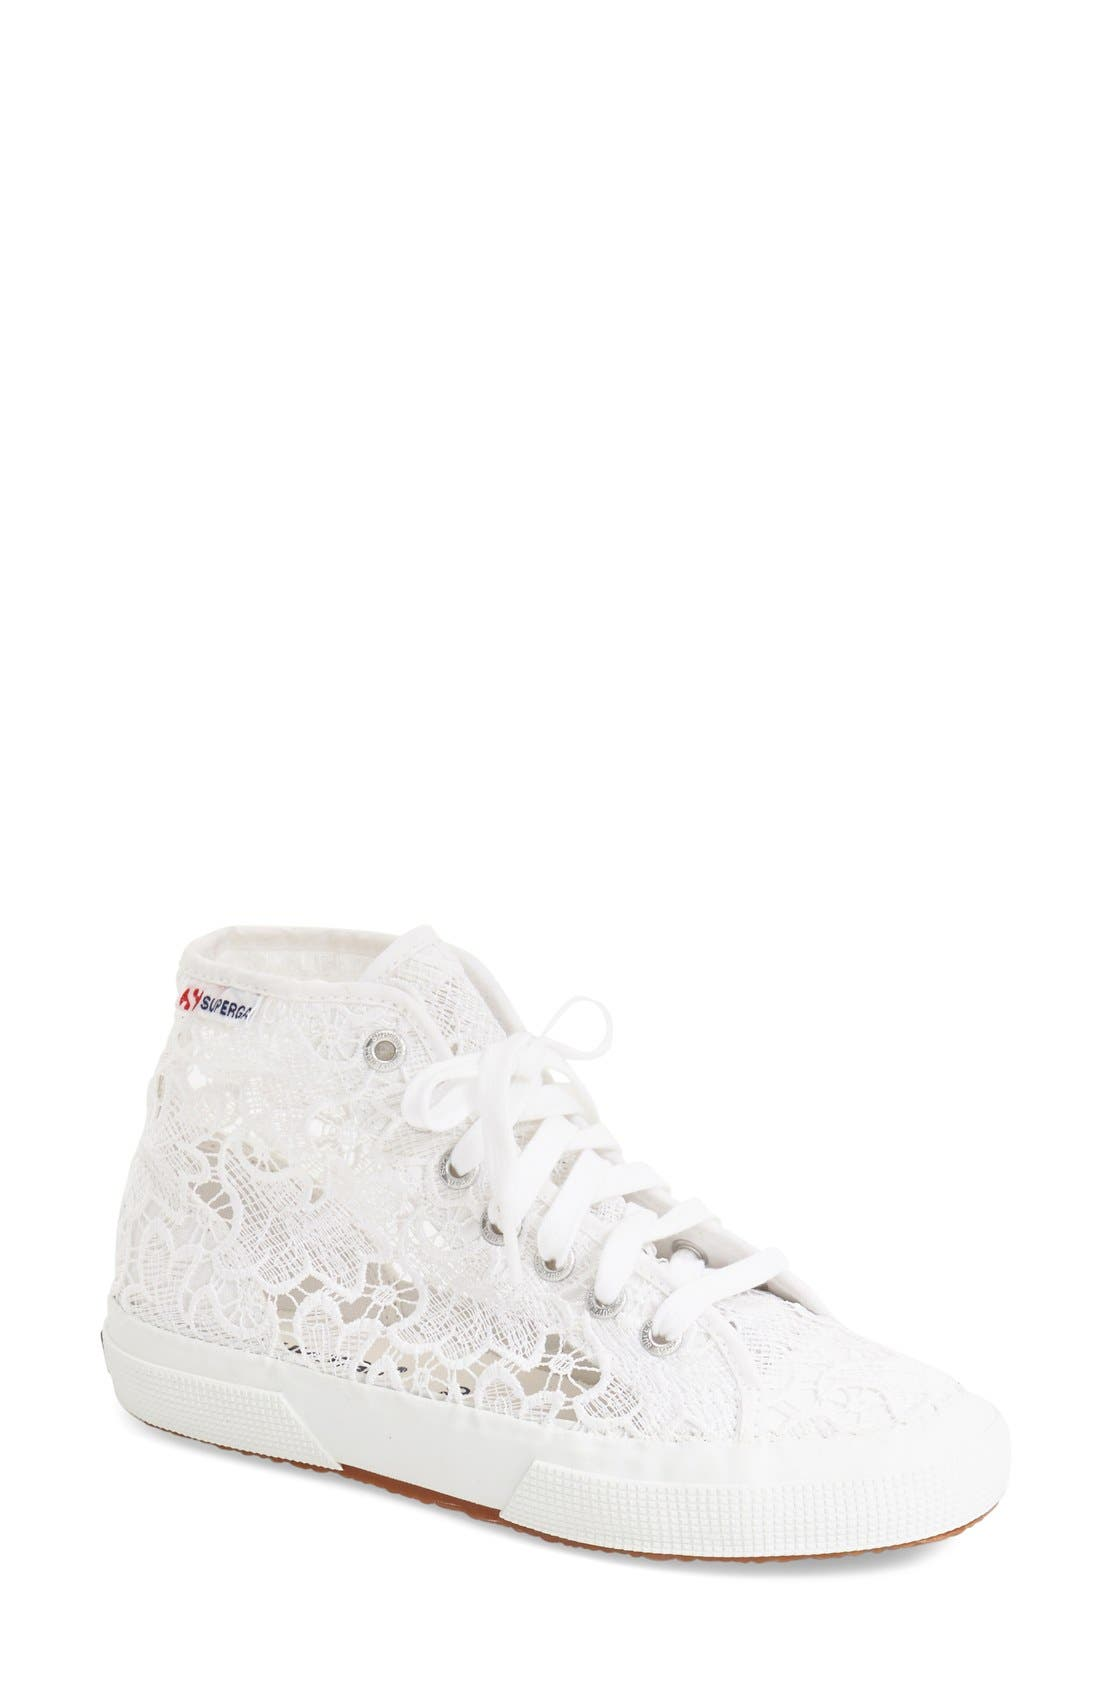 Alternate Image 1 Selected - Superga 'Macramew' High Top Sneaker (Women)